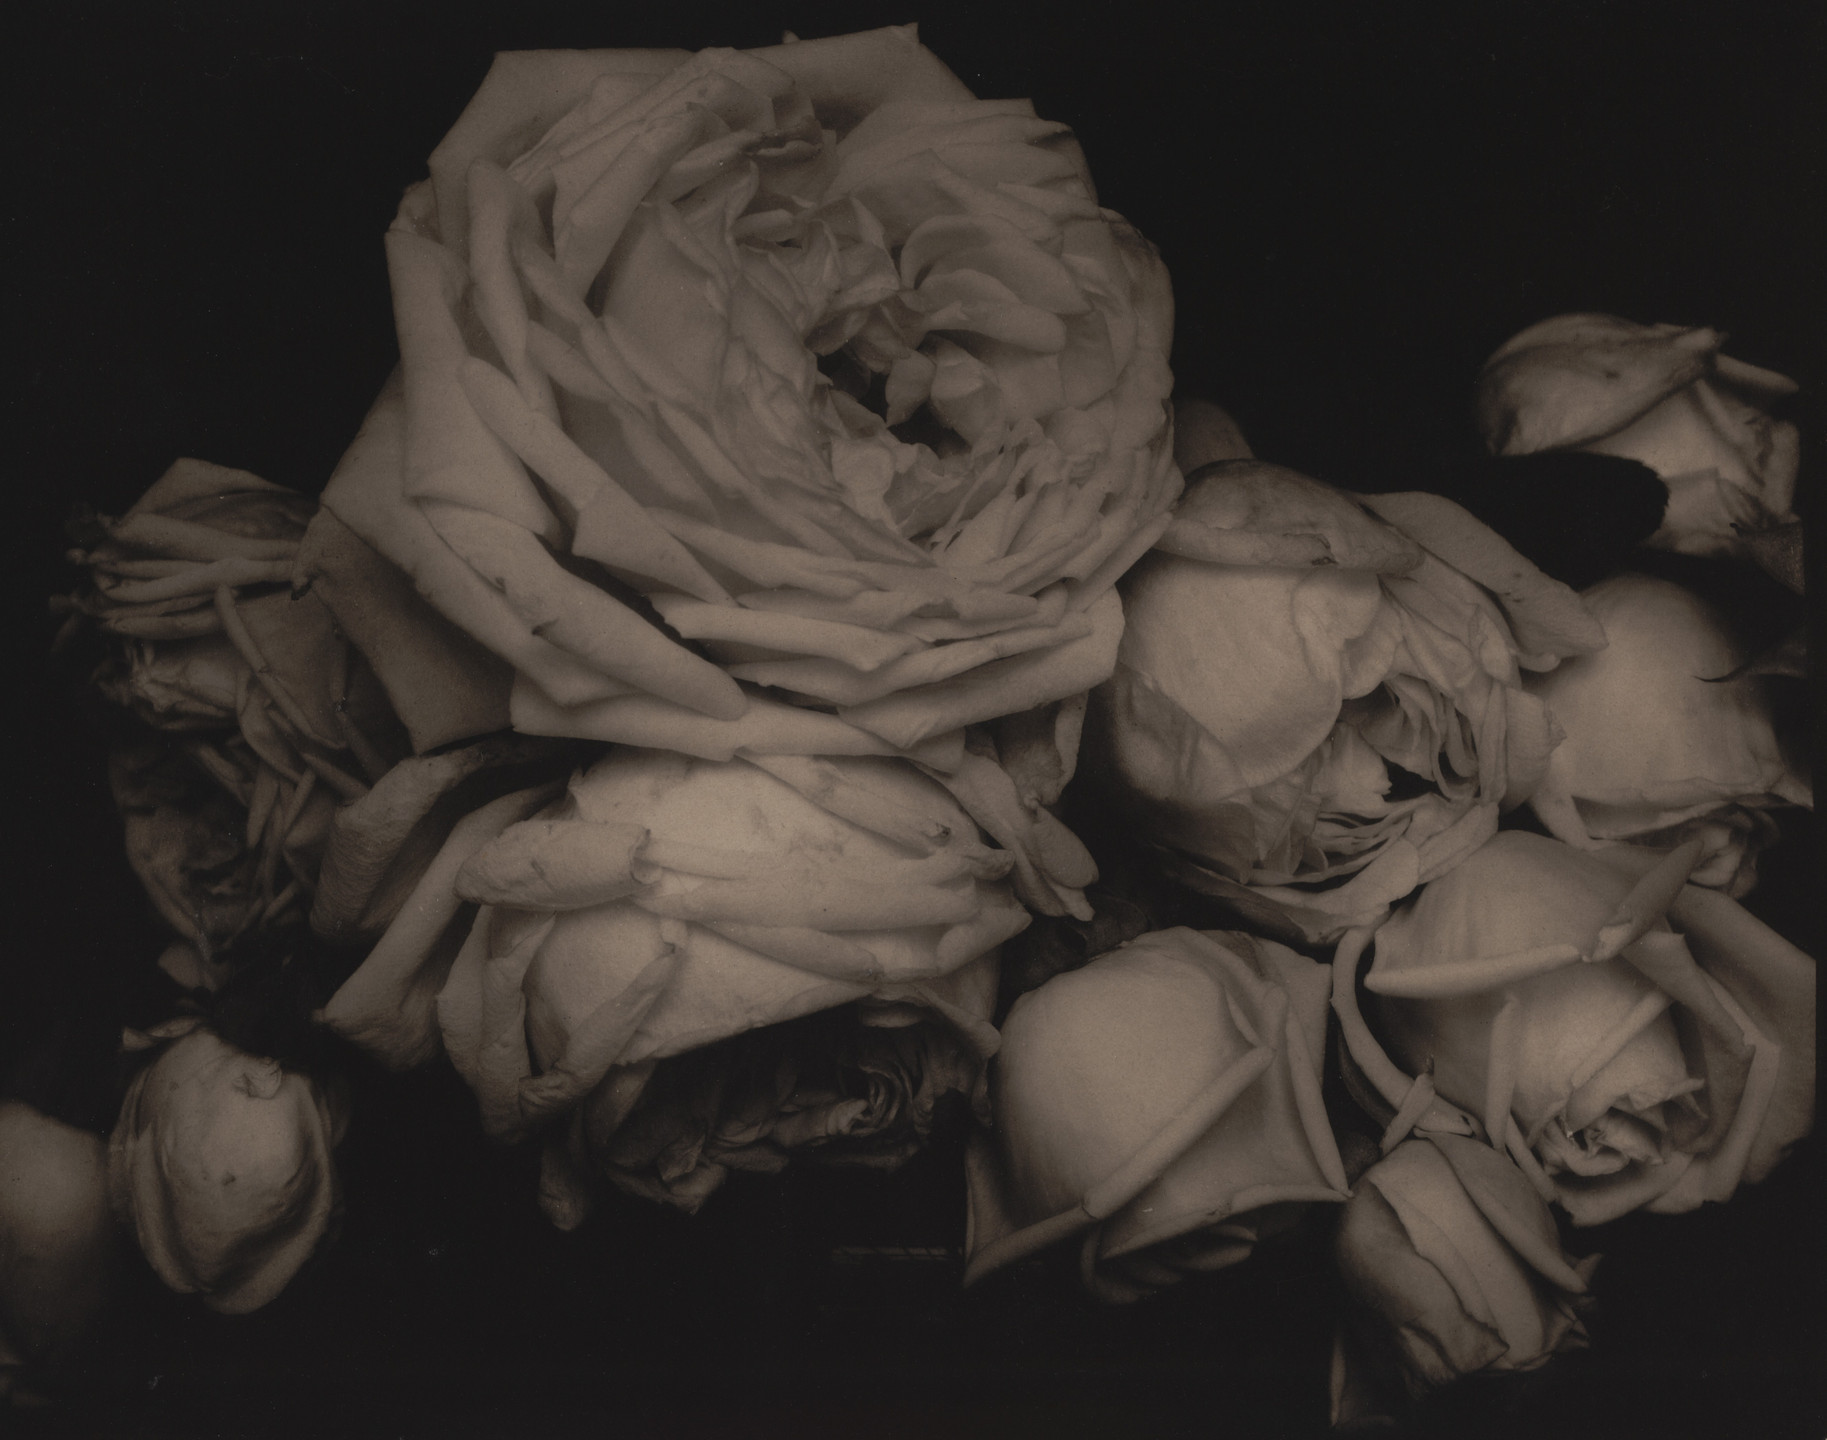 Edward Steichen. Heavy Roses, Voulangis, France. June 1914